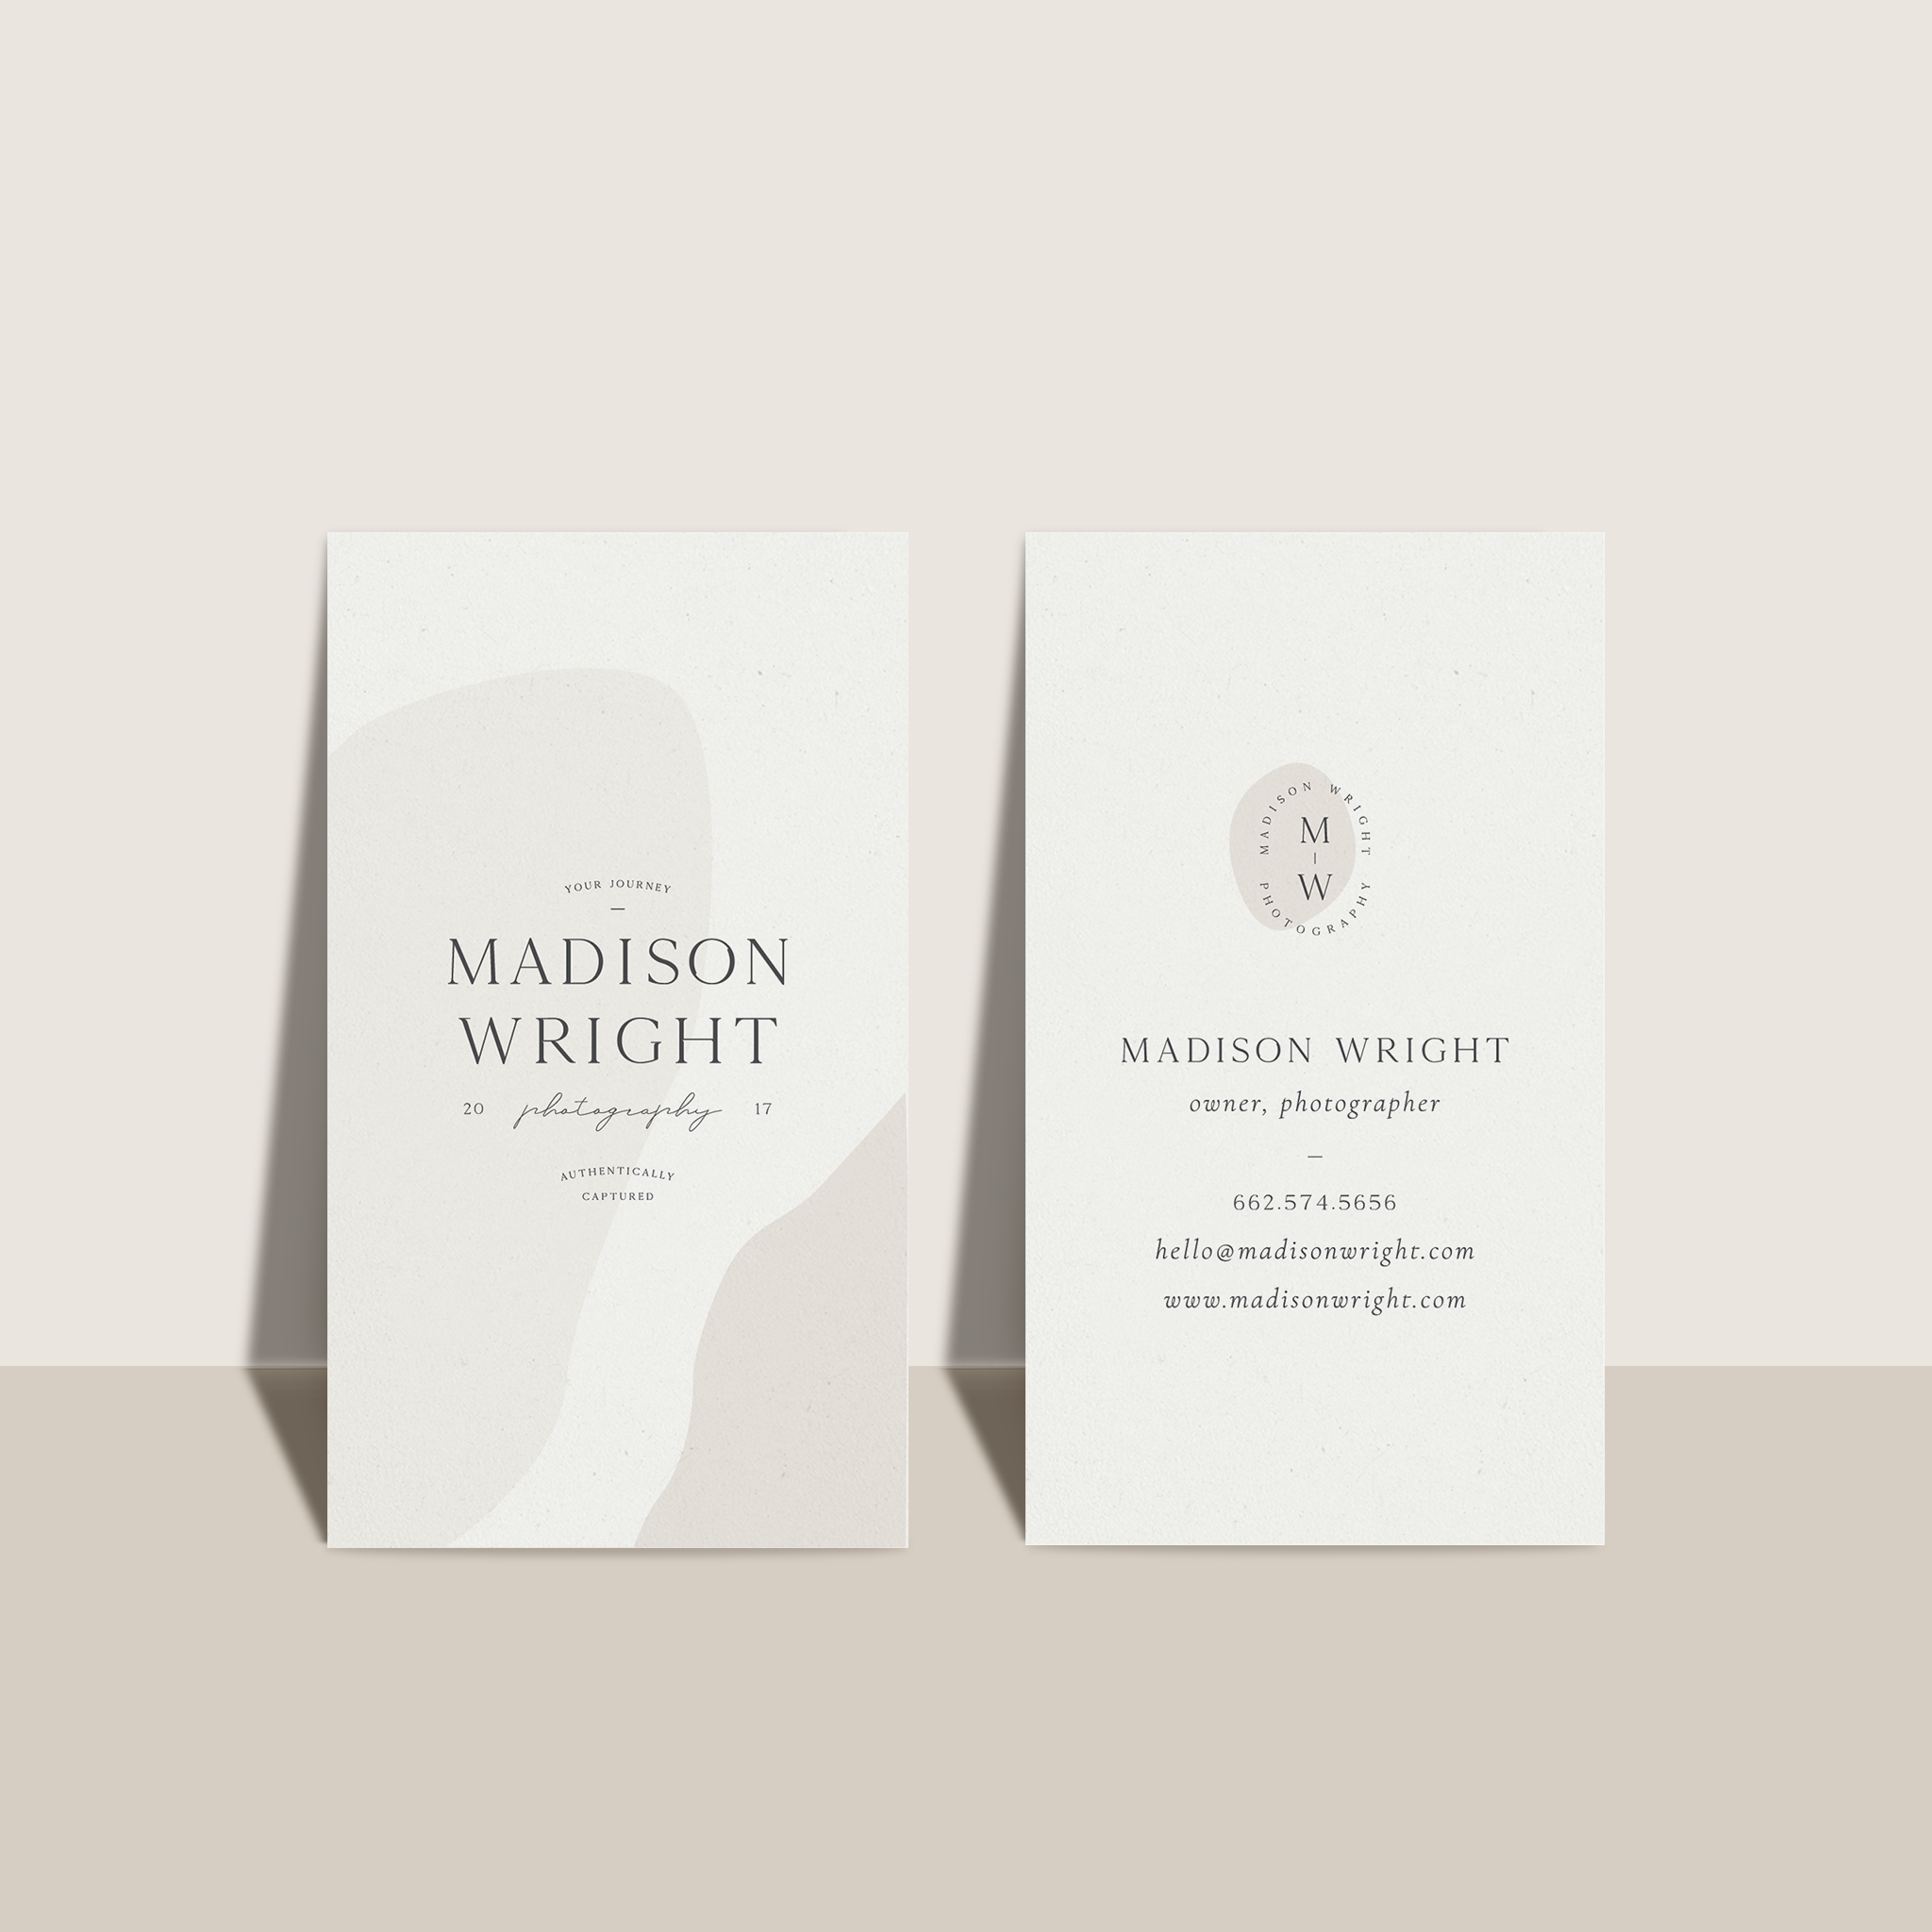 MW_Mockup_BusinessCards_NoShadow_Neutral.png